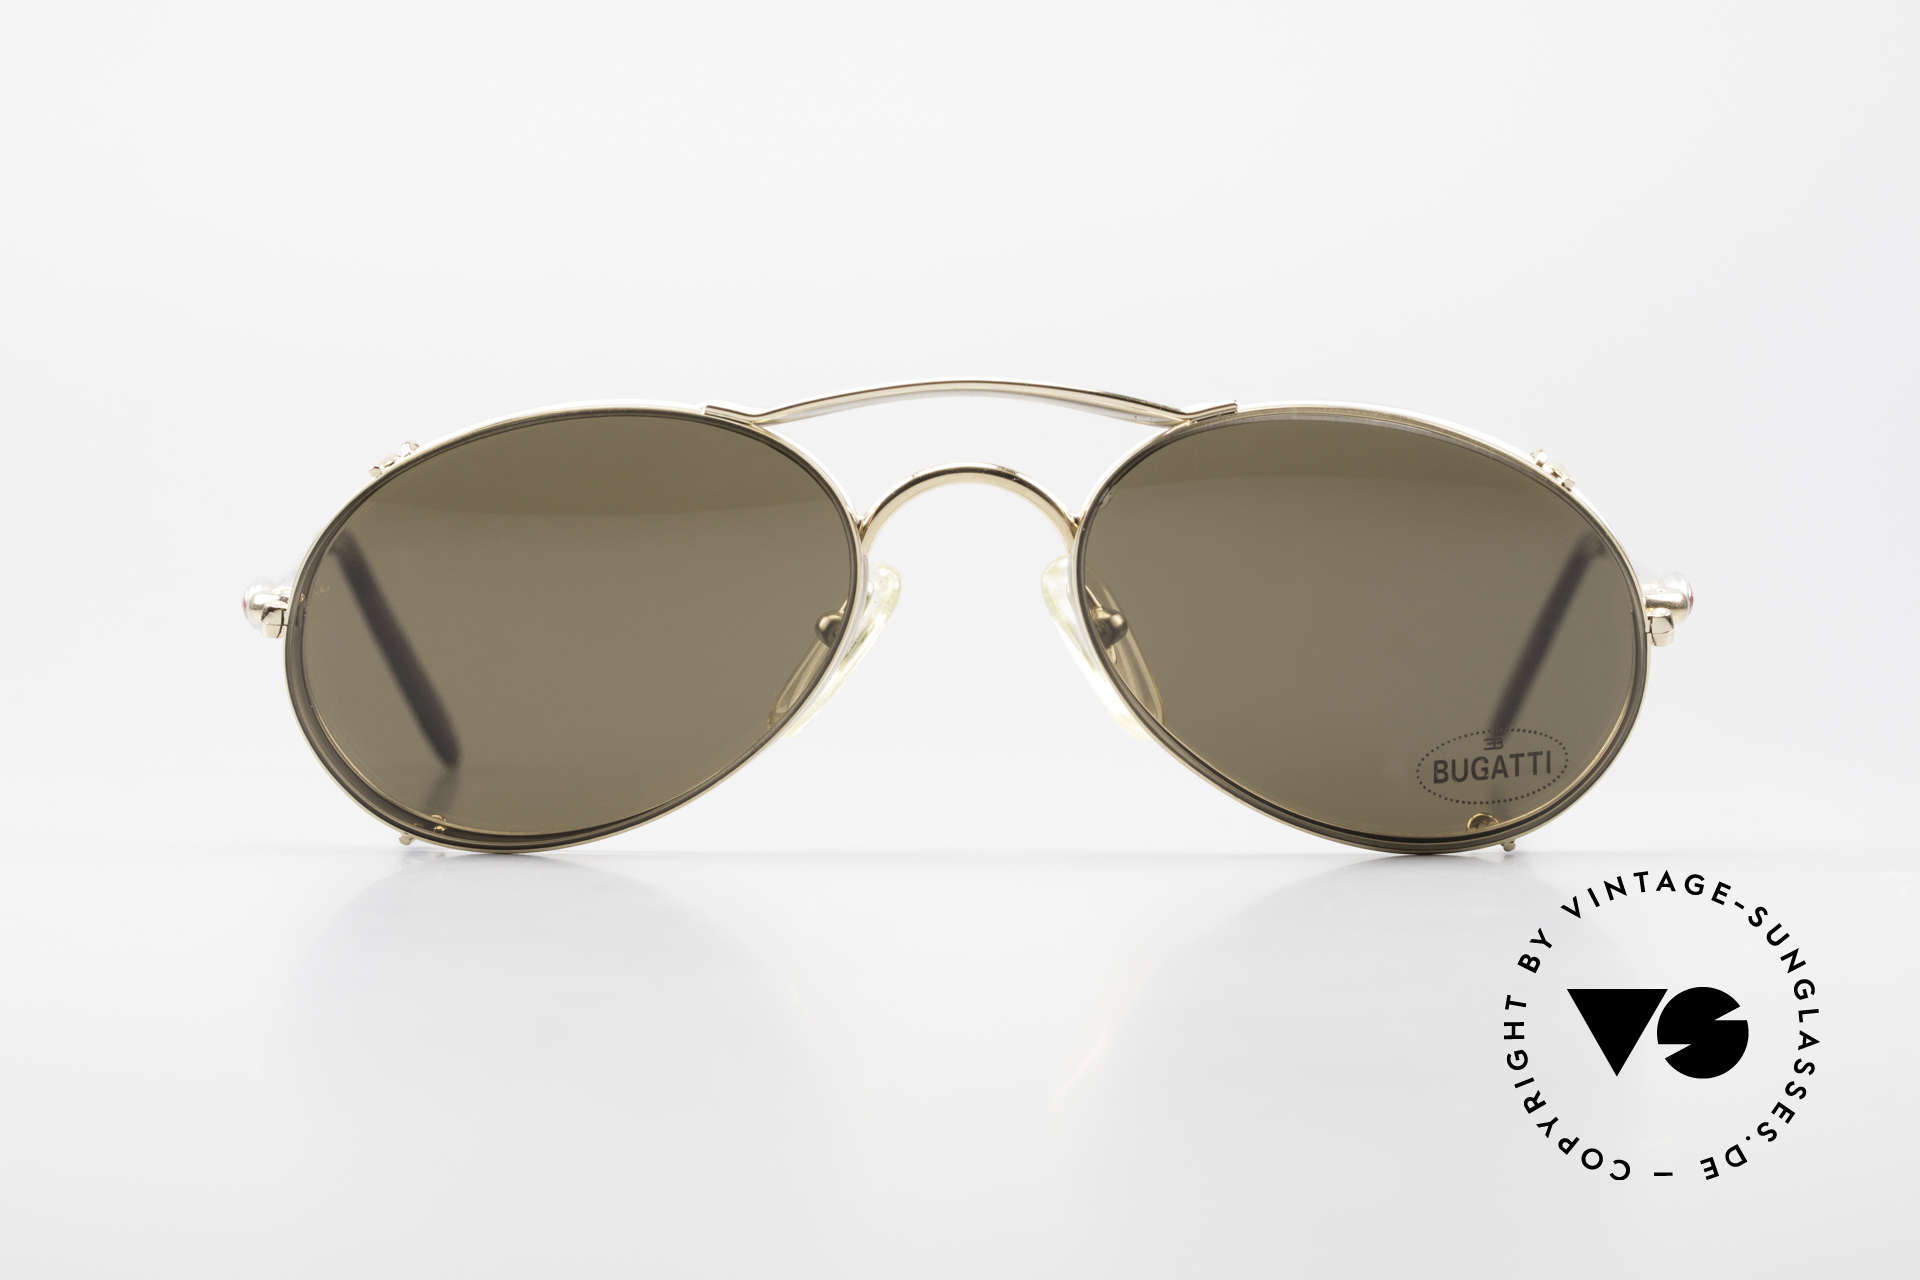 Bugatti 23439 Vintage Glasses With Clip On, 1st class comfort thanks to flexible spring temples, Made for Men